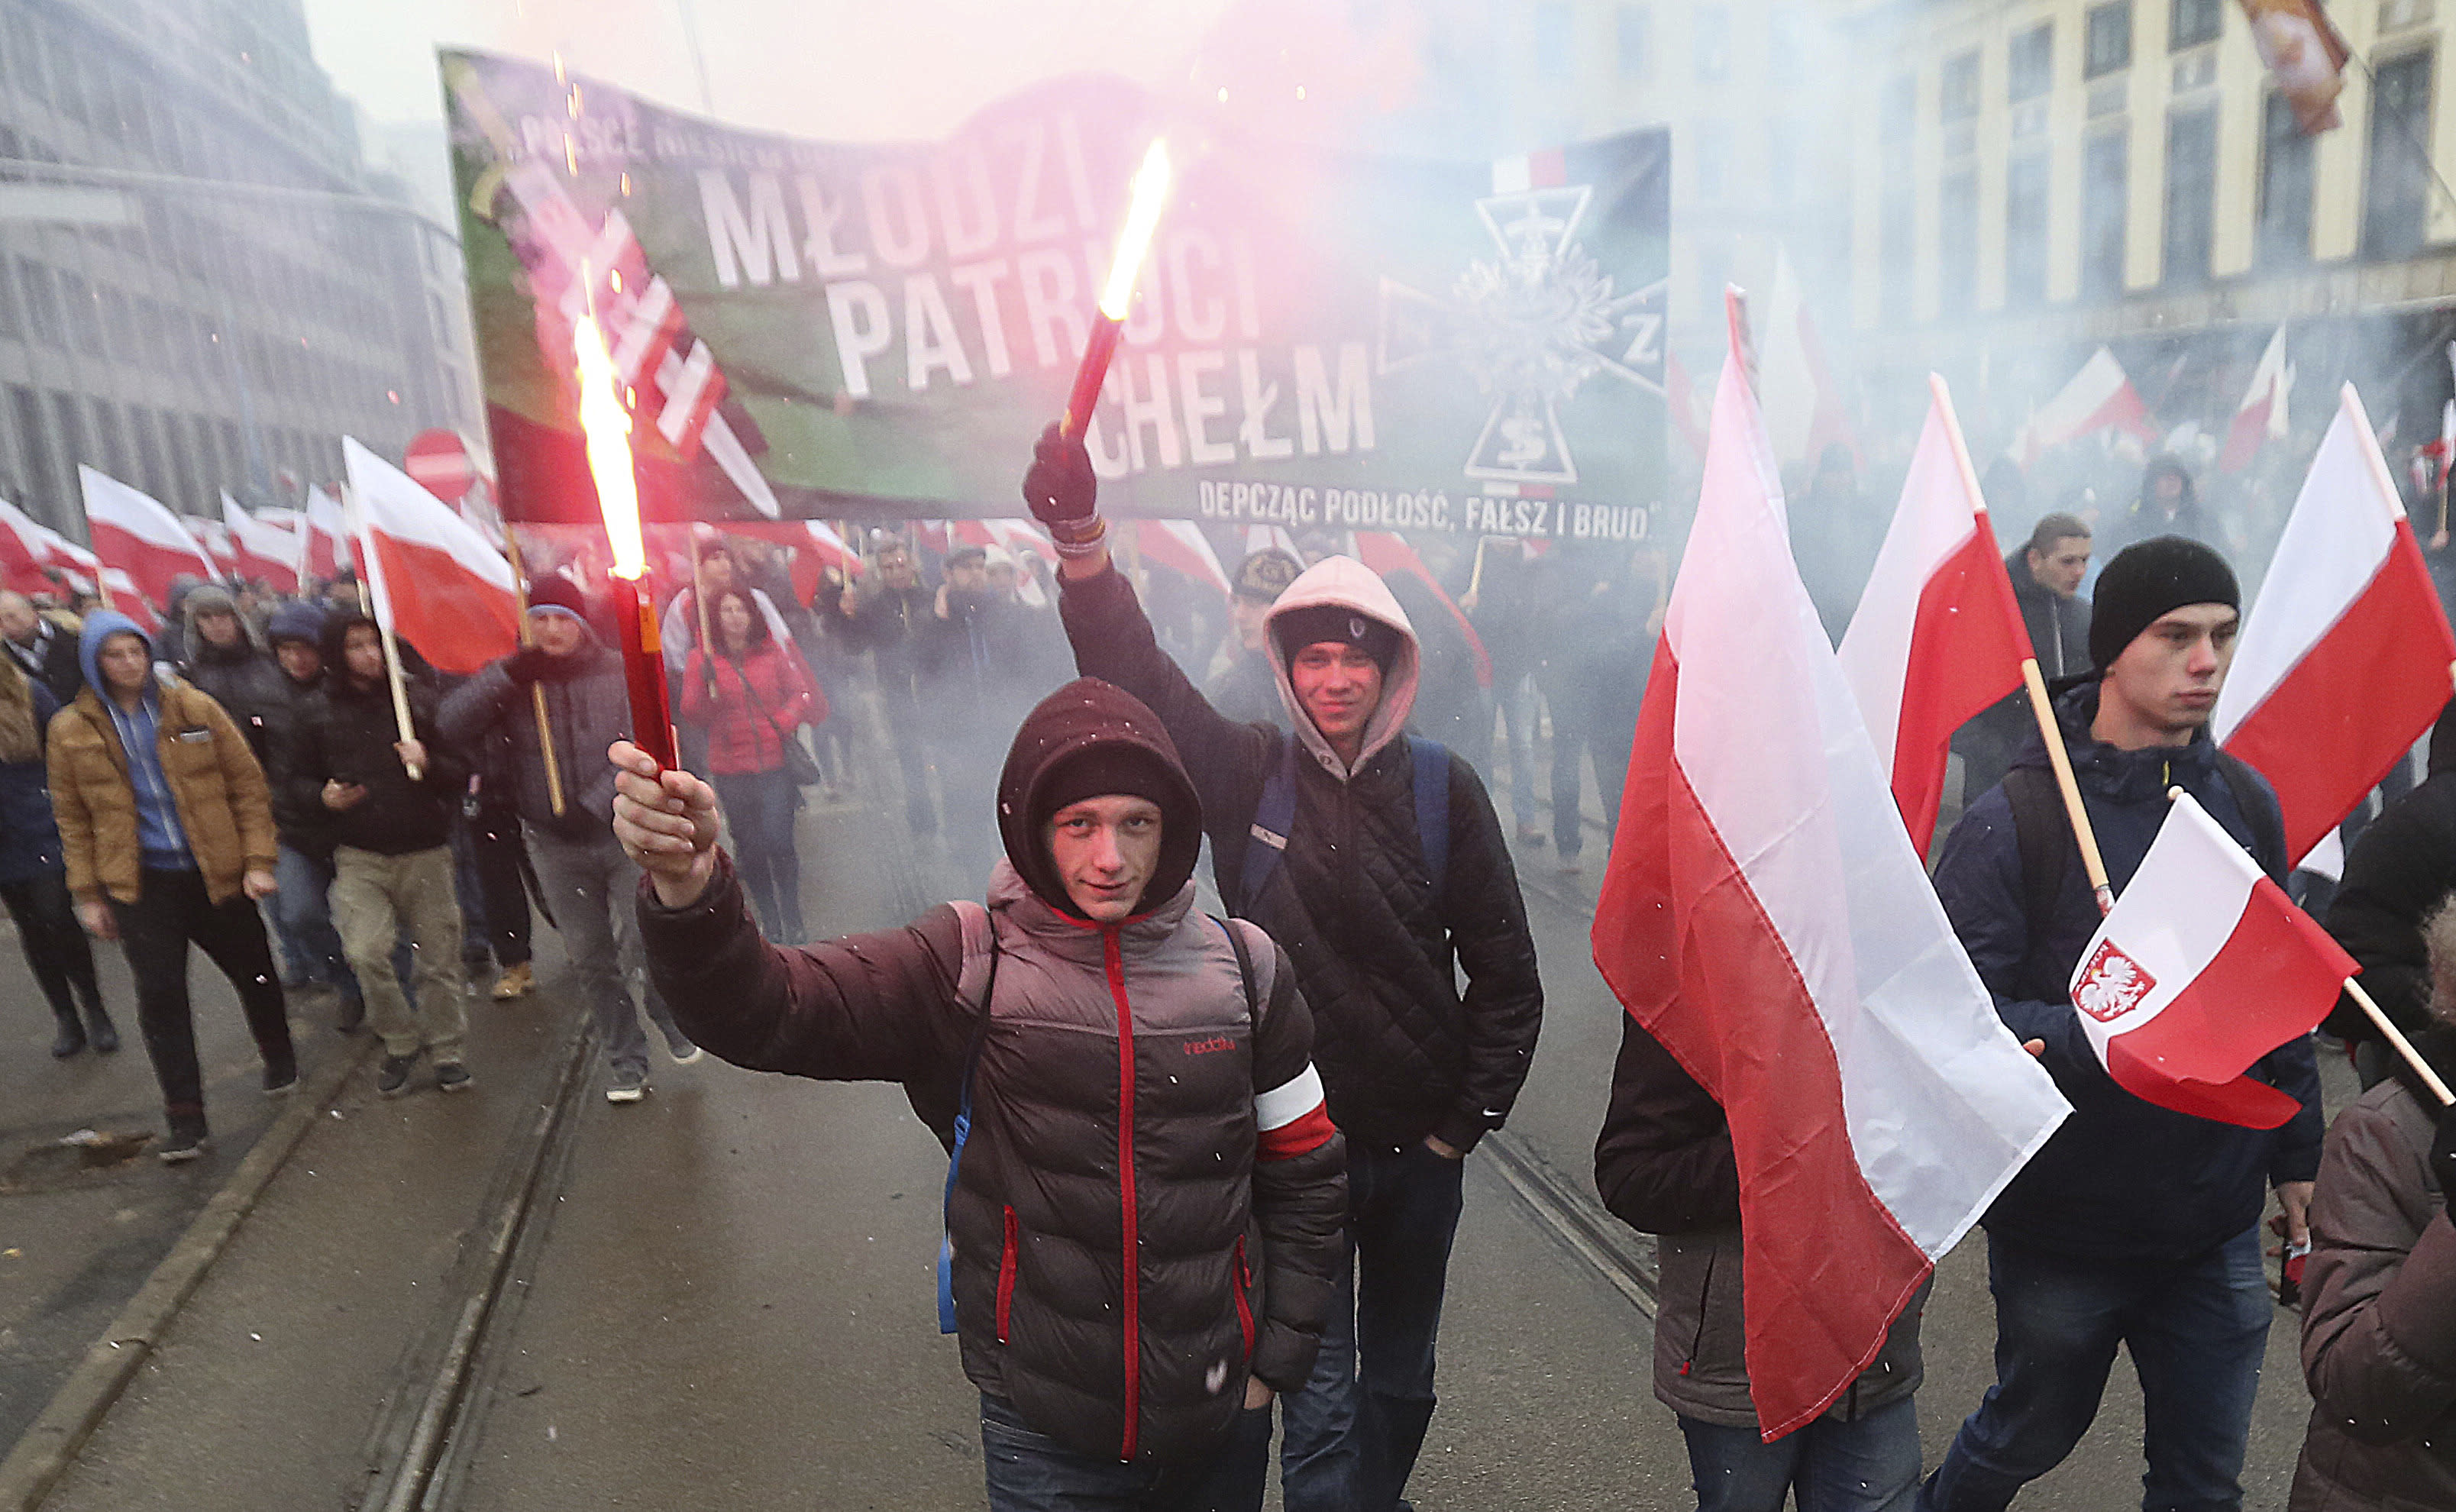 Nationalists, burning flares and carrying Polish flags as they march in large numbers through the streets of Warsaw to mark Poland's Independence Day in Warsaw, Poland, Friday, Nov. 11, 2016. (AP Photo/Czarek Sokolowski)